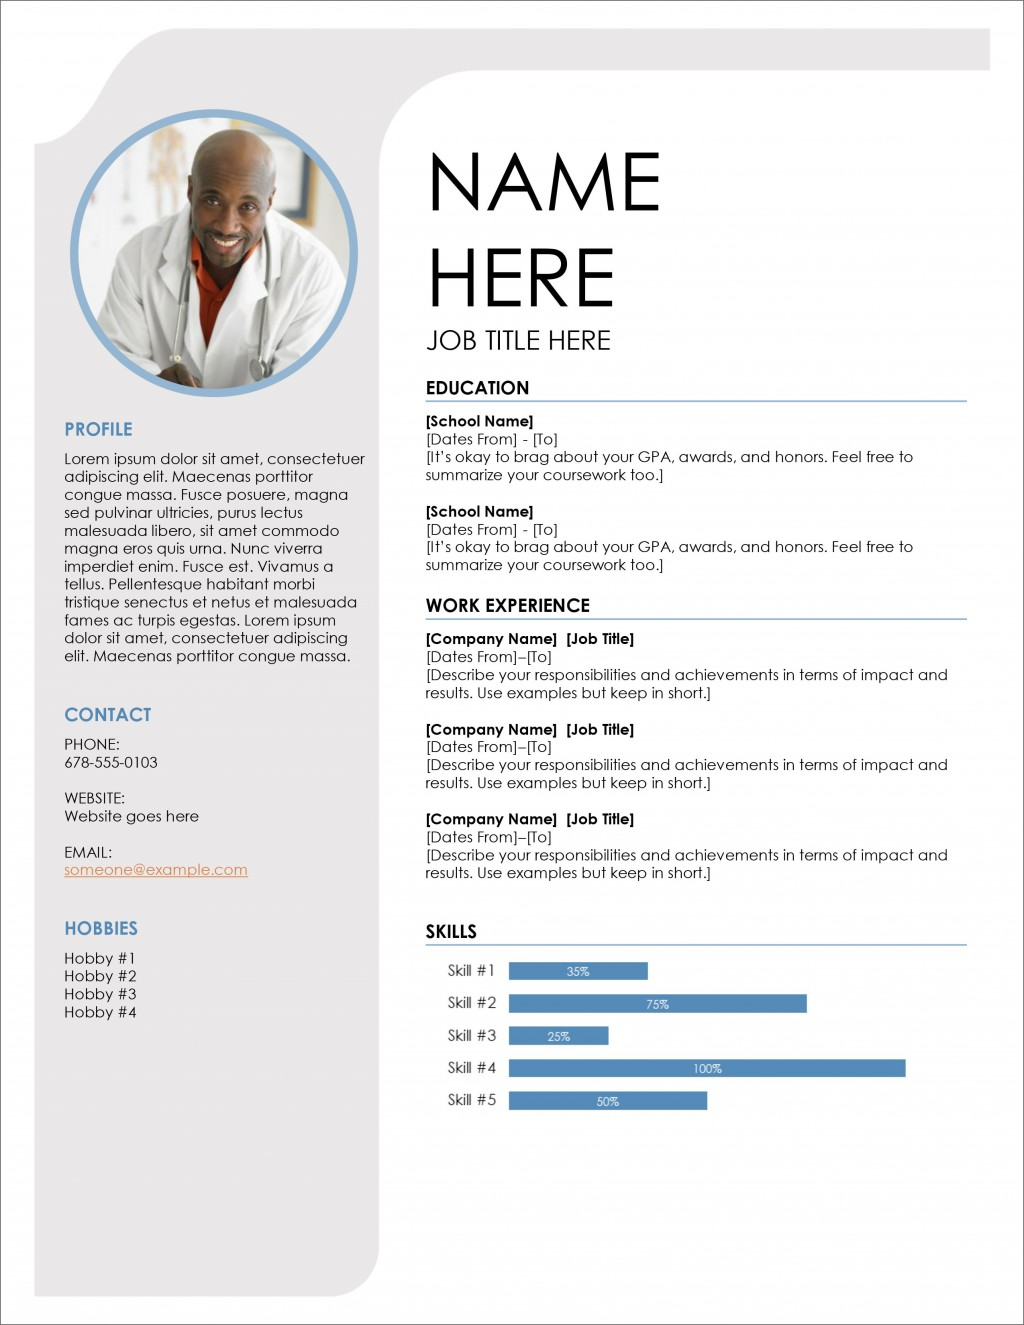 004 Astounding Microsoft Word Resume Template Download High Definition  Modern M Free Office 2007Large